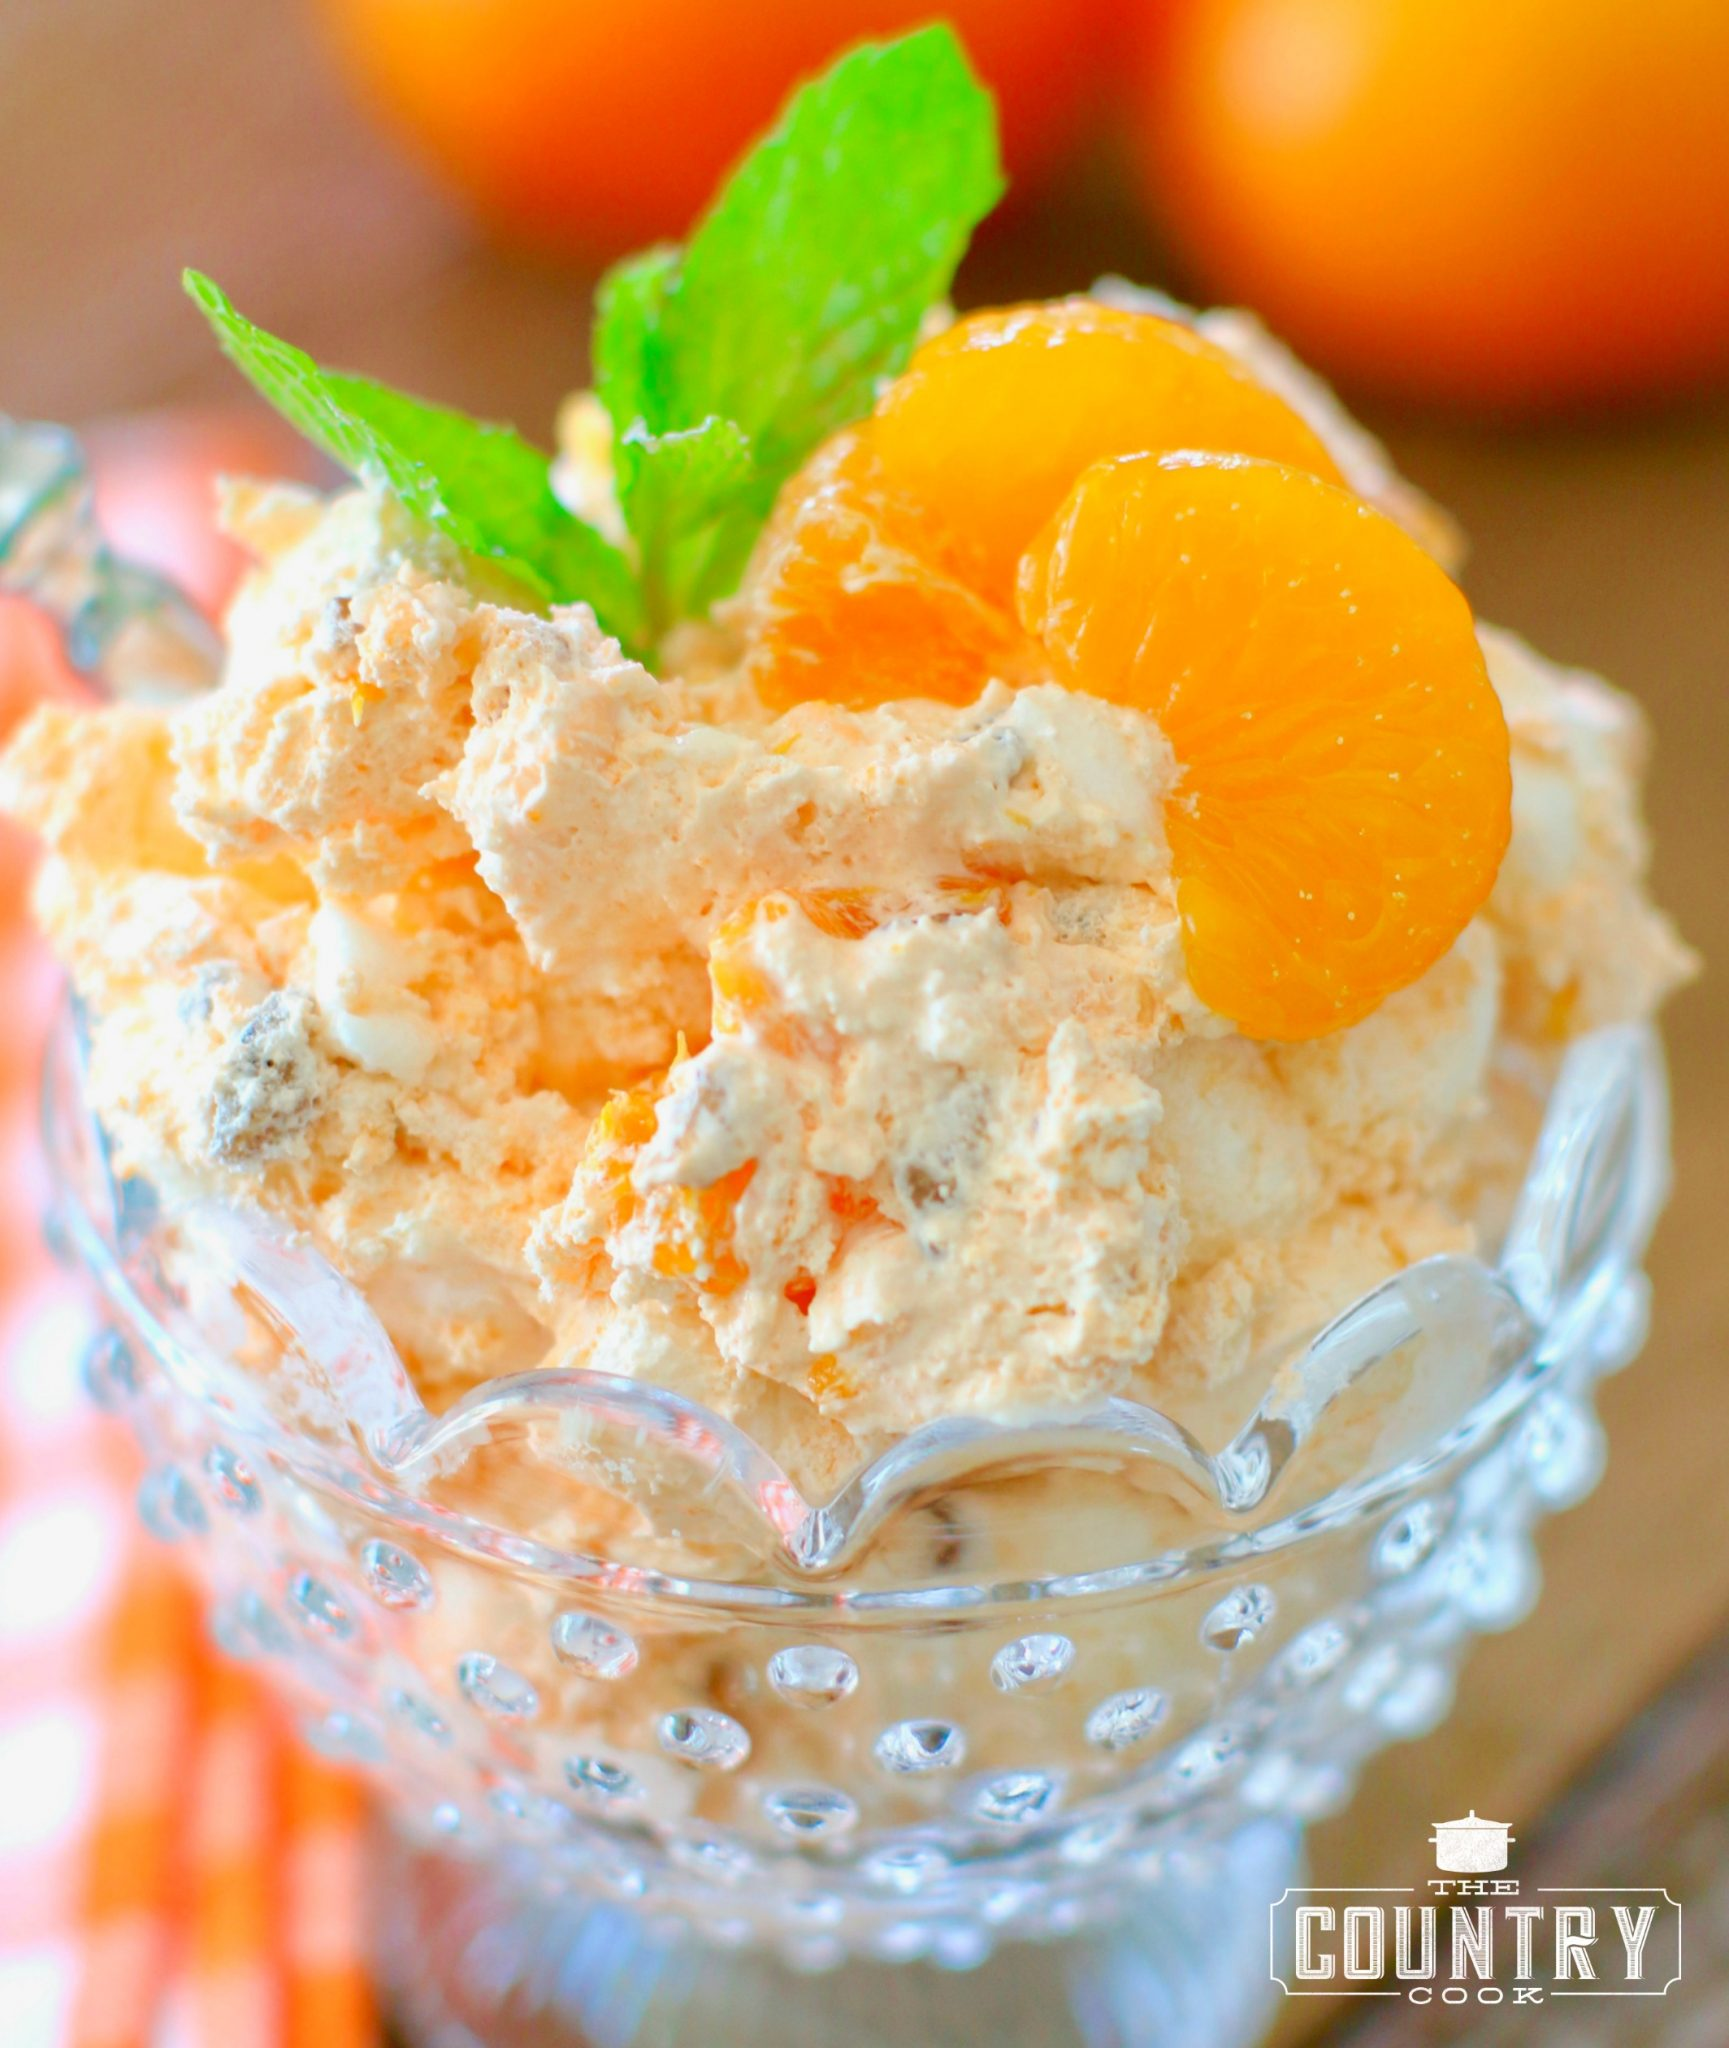 This easy to make orange fluff is fresh and full of yummy citrus flavors.